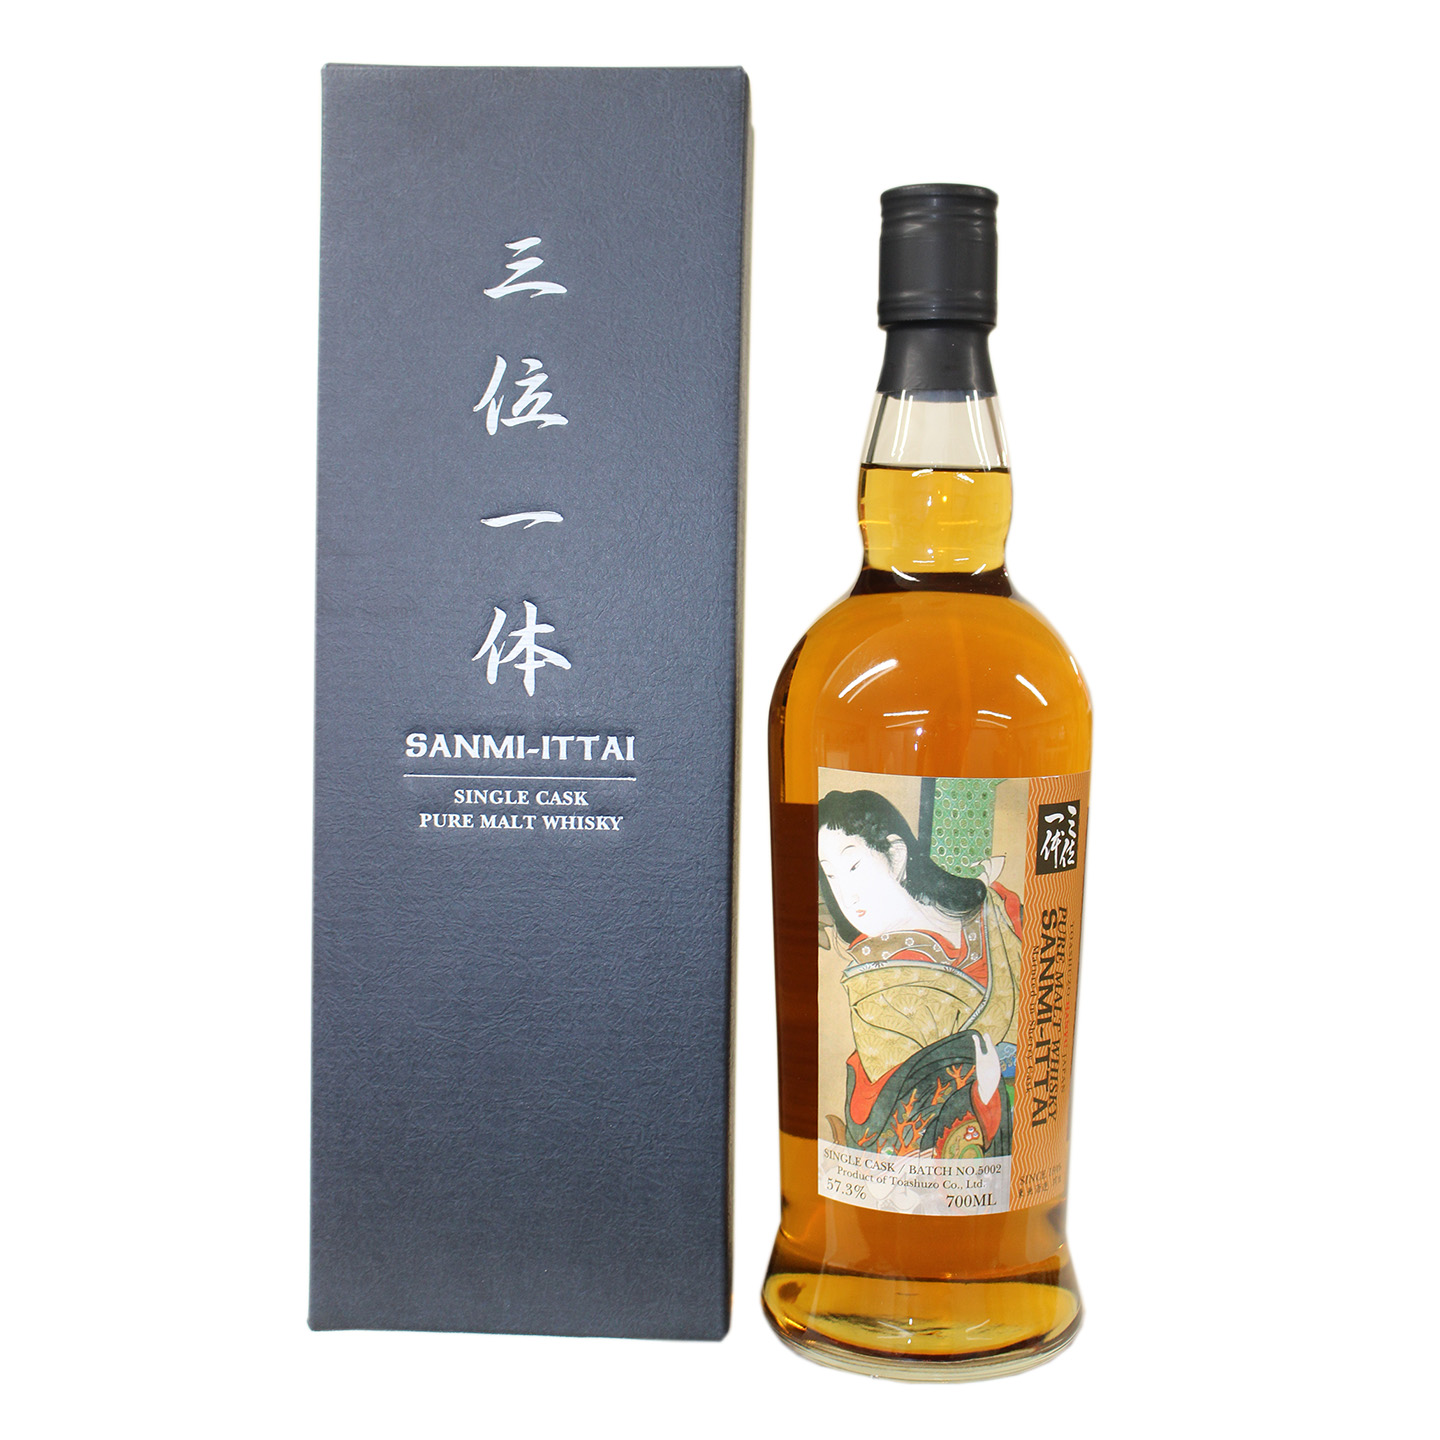 The Trinitas Japanese Whisky Silent Geisha